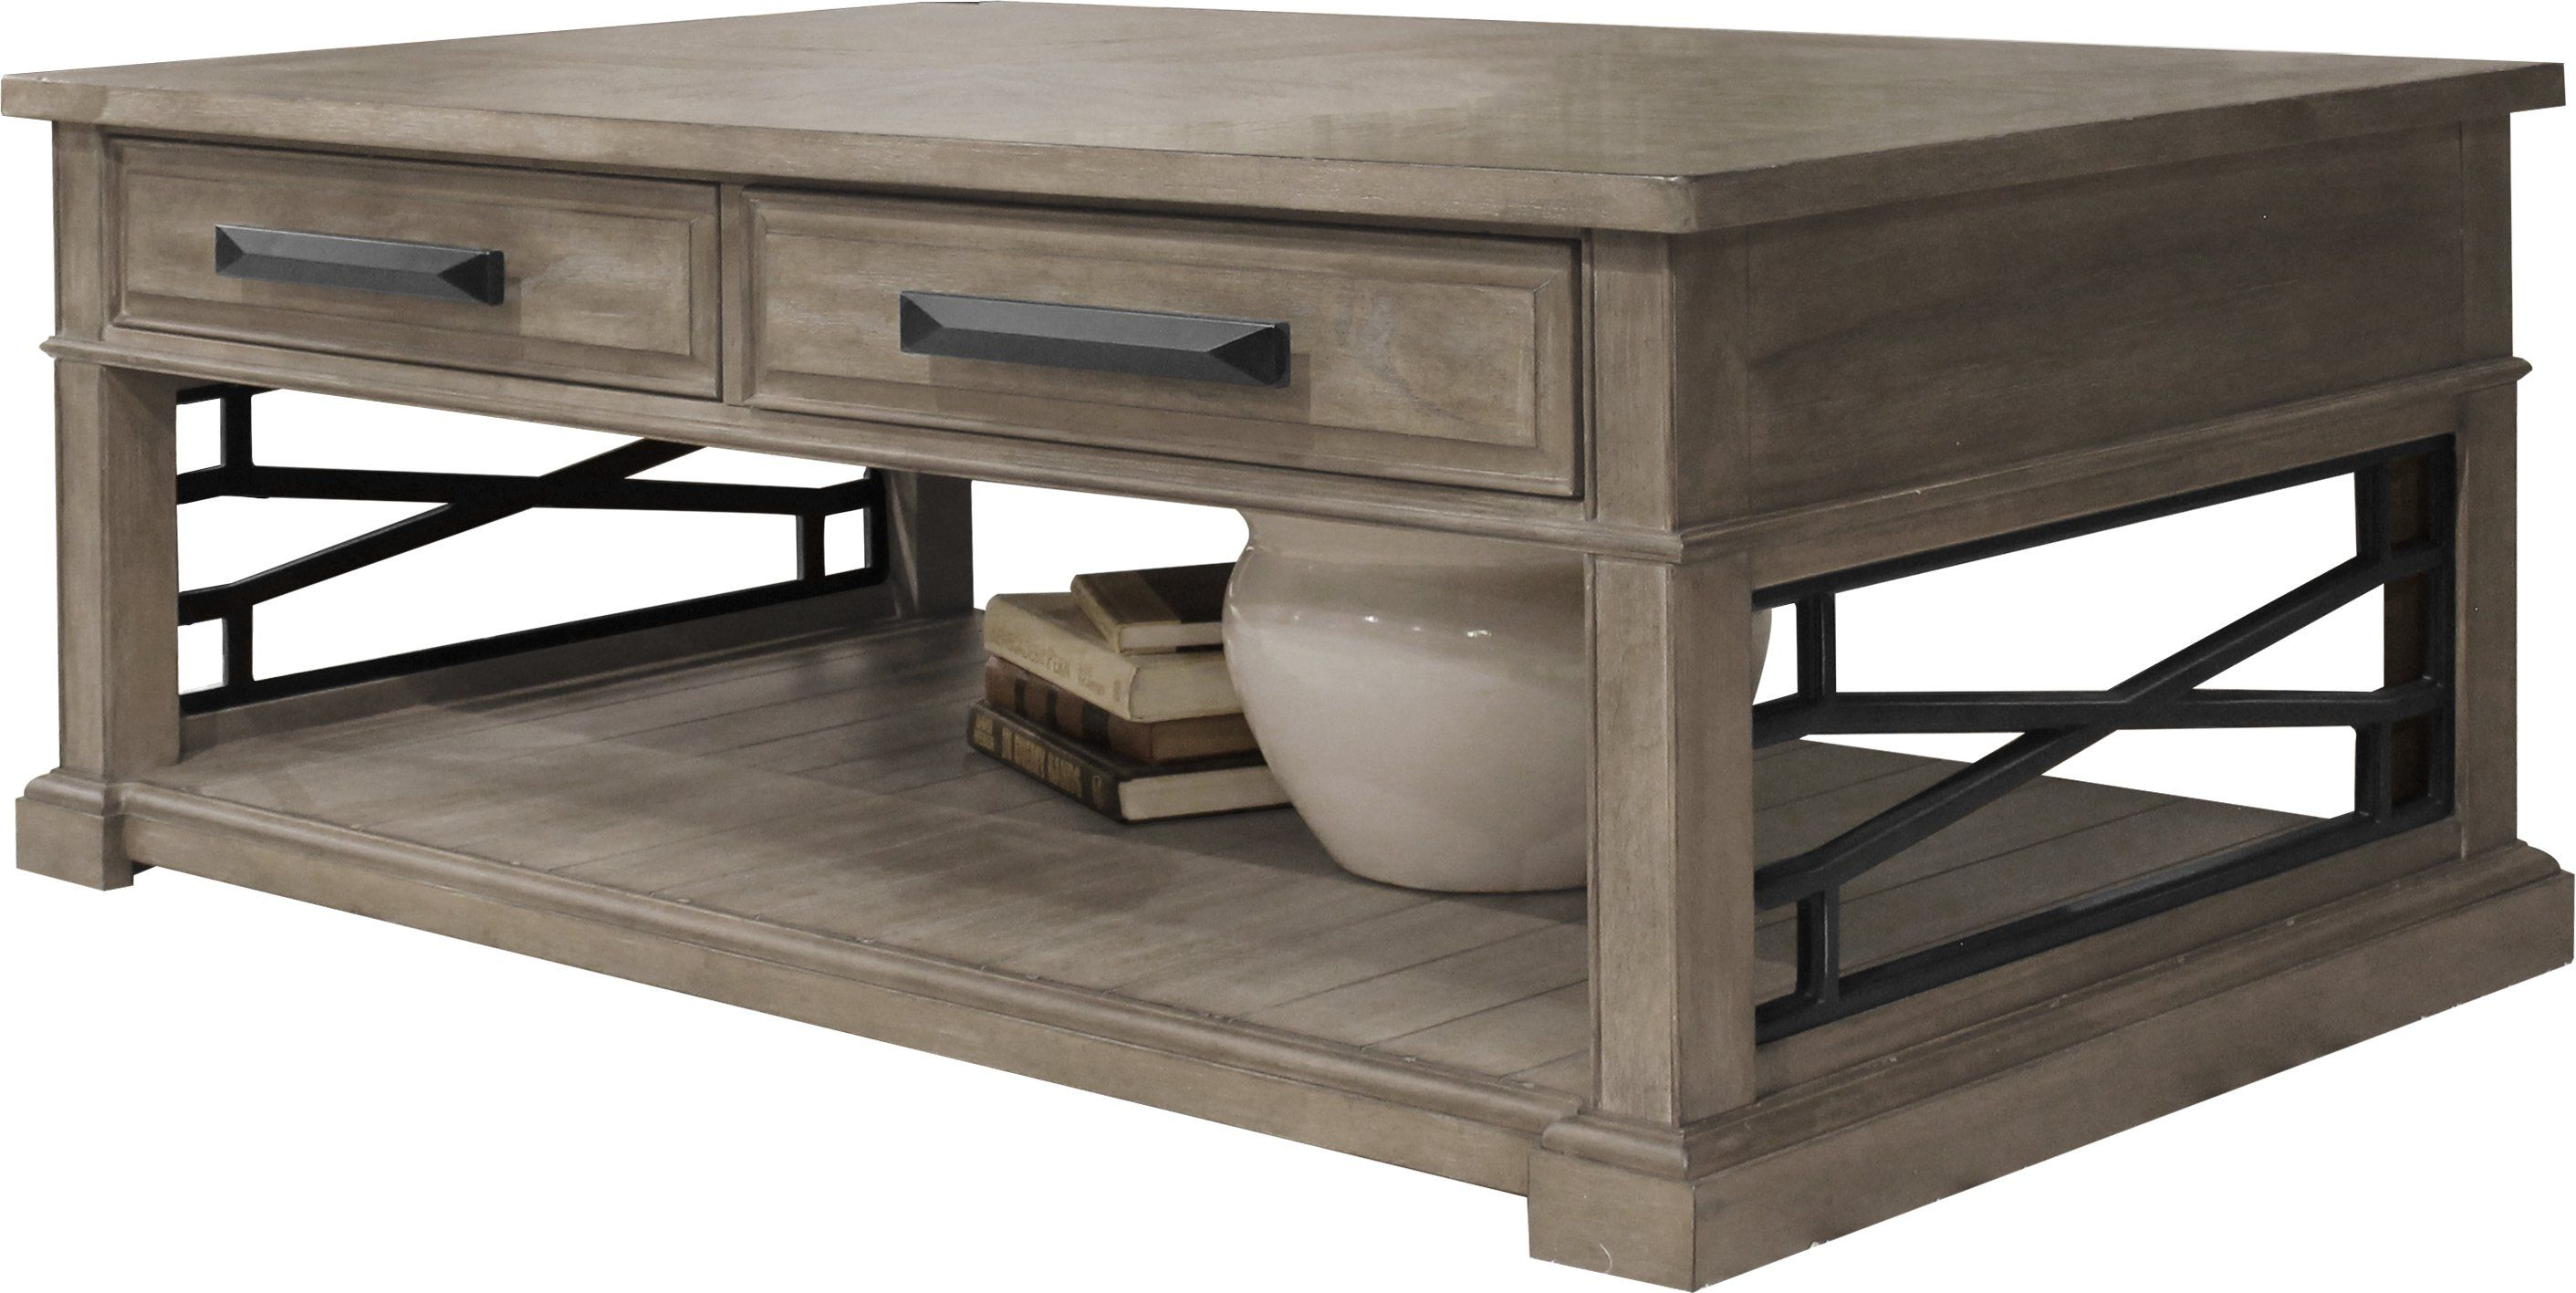 Traditional Sandstone Coffee Table Coffee Table Table Coffee Table Books [ 1417 x 2823 Pixel ]